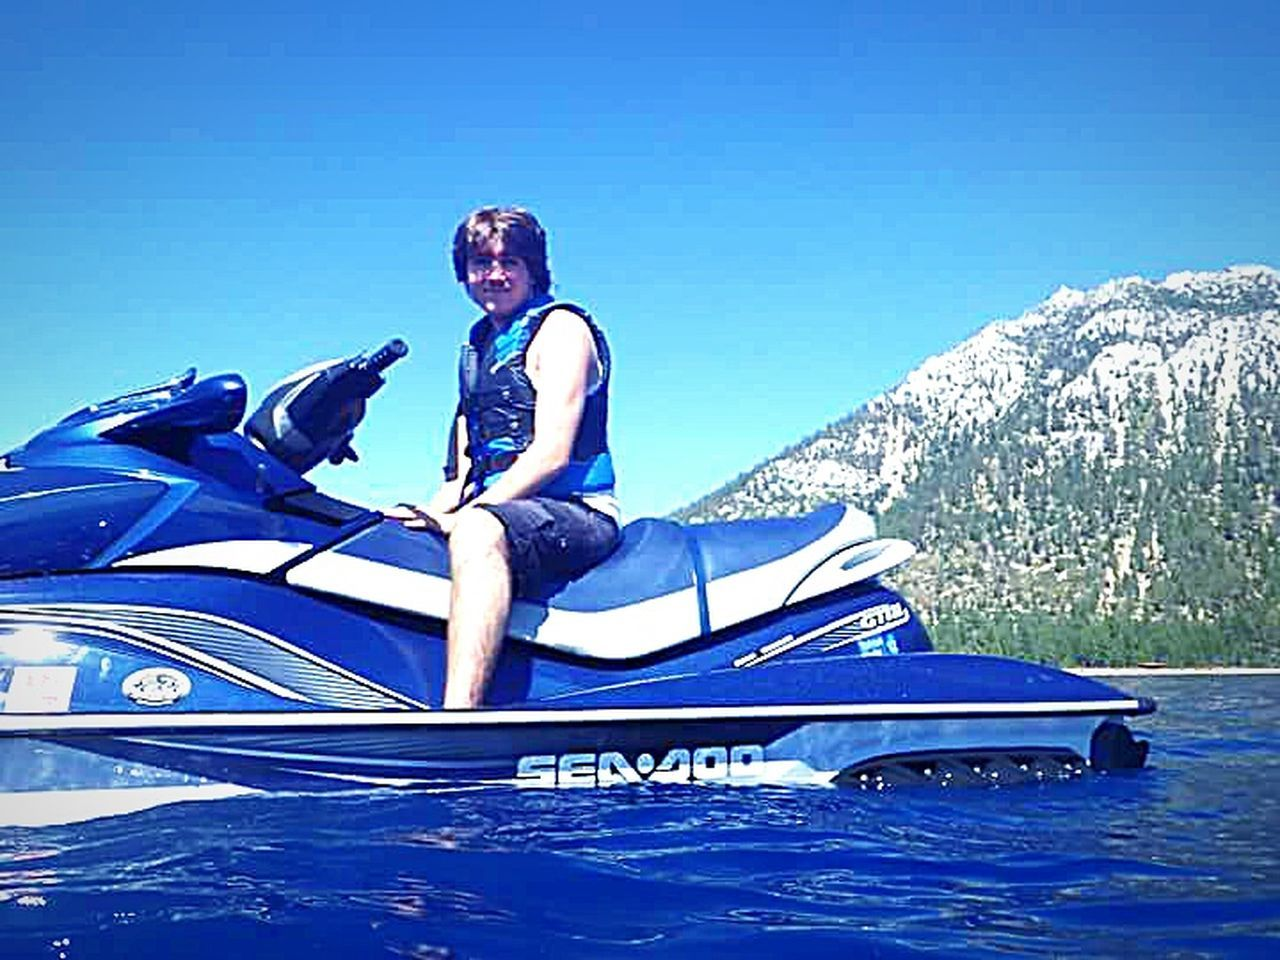 The essence of summer The Following My Happy Place  Swimming In The Lake Water Lake Tahoe Water Sports Waterproof Camera Jet Skiing Having Fun With Kids Water Photography Lake Tahoe Outdoor Photography Clear Blue Water Taking Photos ❤ Vacation Time ♡ My Son ❤ Water Sports Mountains And Sky Sierra Nevada Mountains Enjoying Life my photography